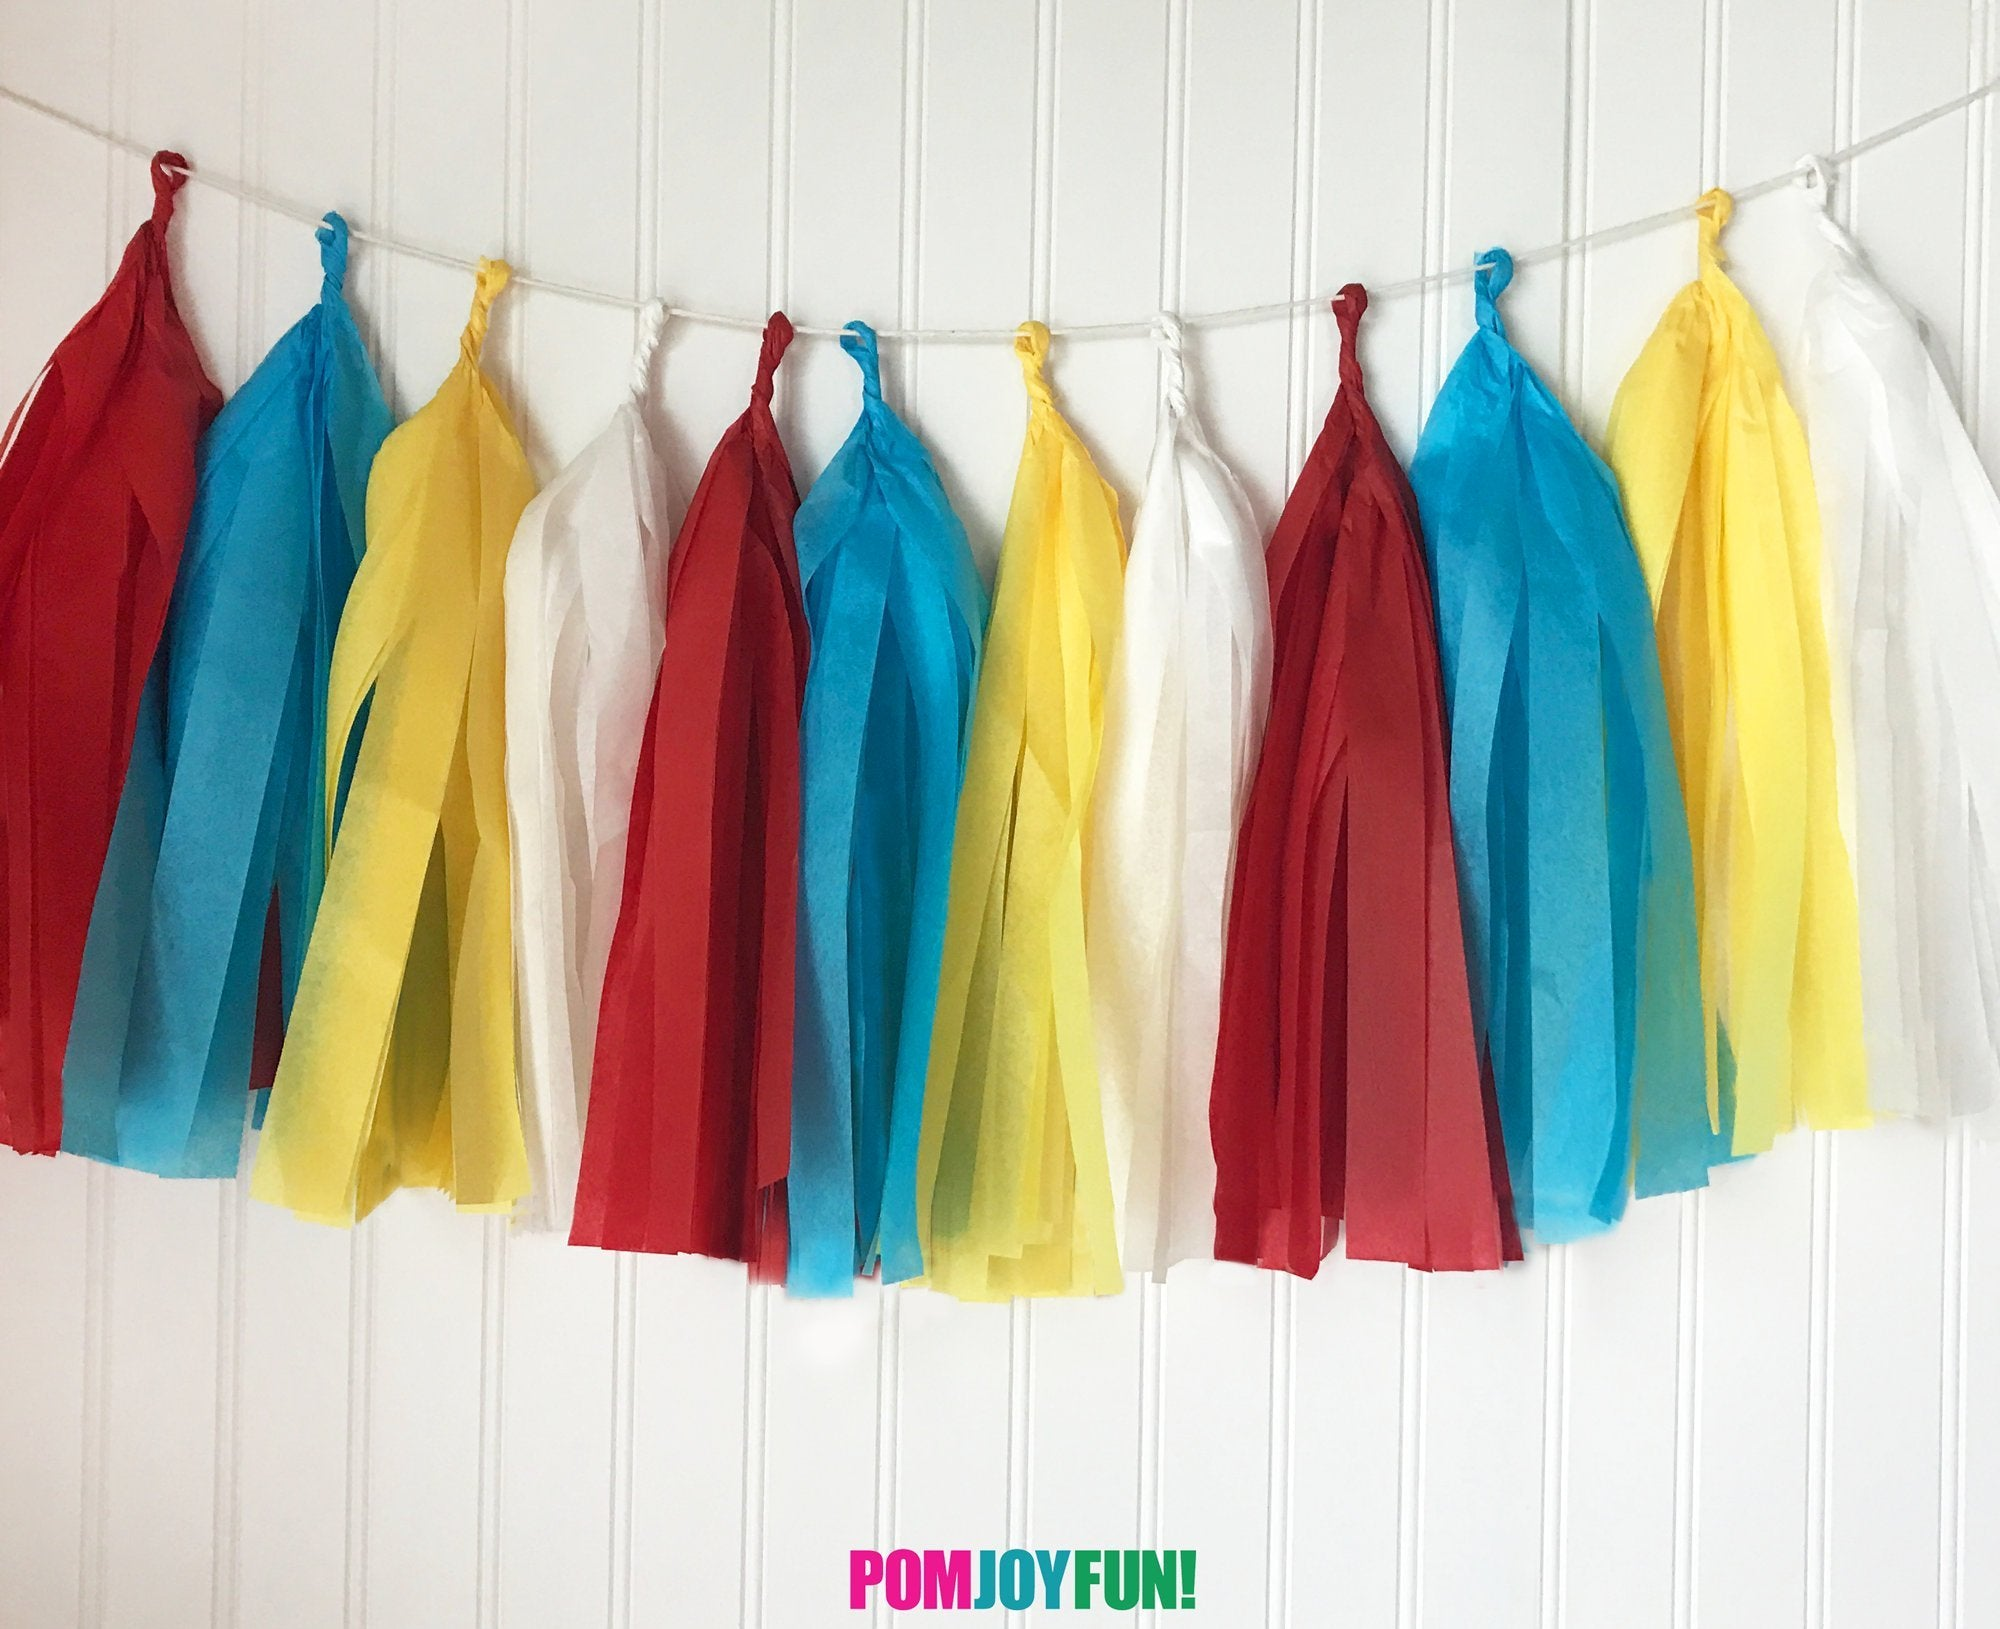 Carnival or Circus Theme Tassel Garland, in Red, Yellow, White and Turquoise, for Birthday Party or Celebrations.